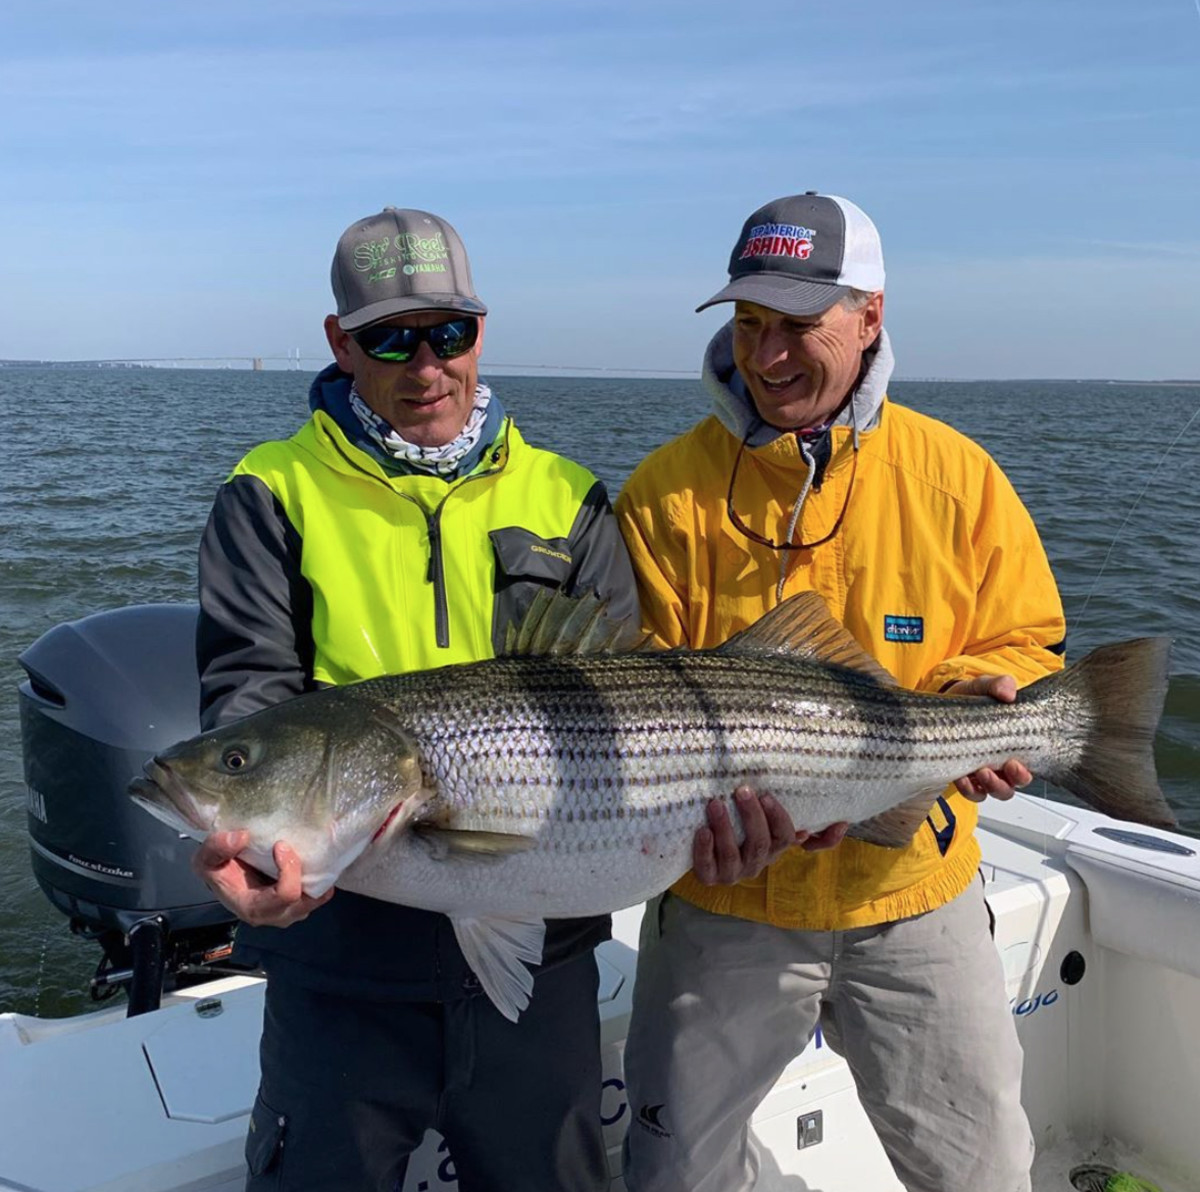 ASA president Glenn Hughes posted a picture on Instagram of himself holding a striped bass during the coronavirus quarantine.